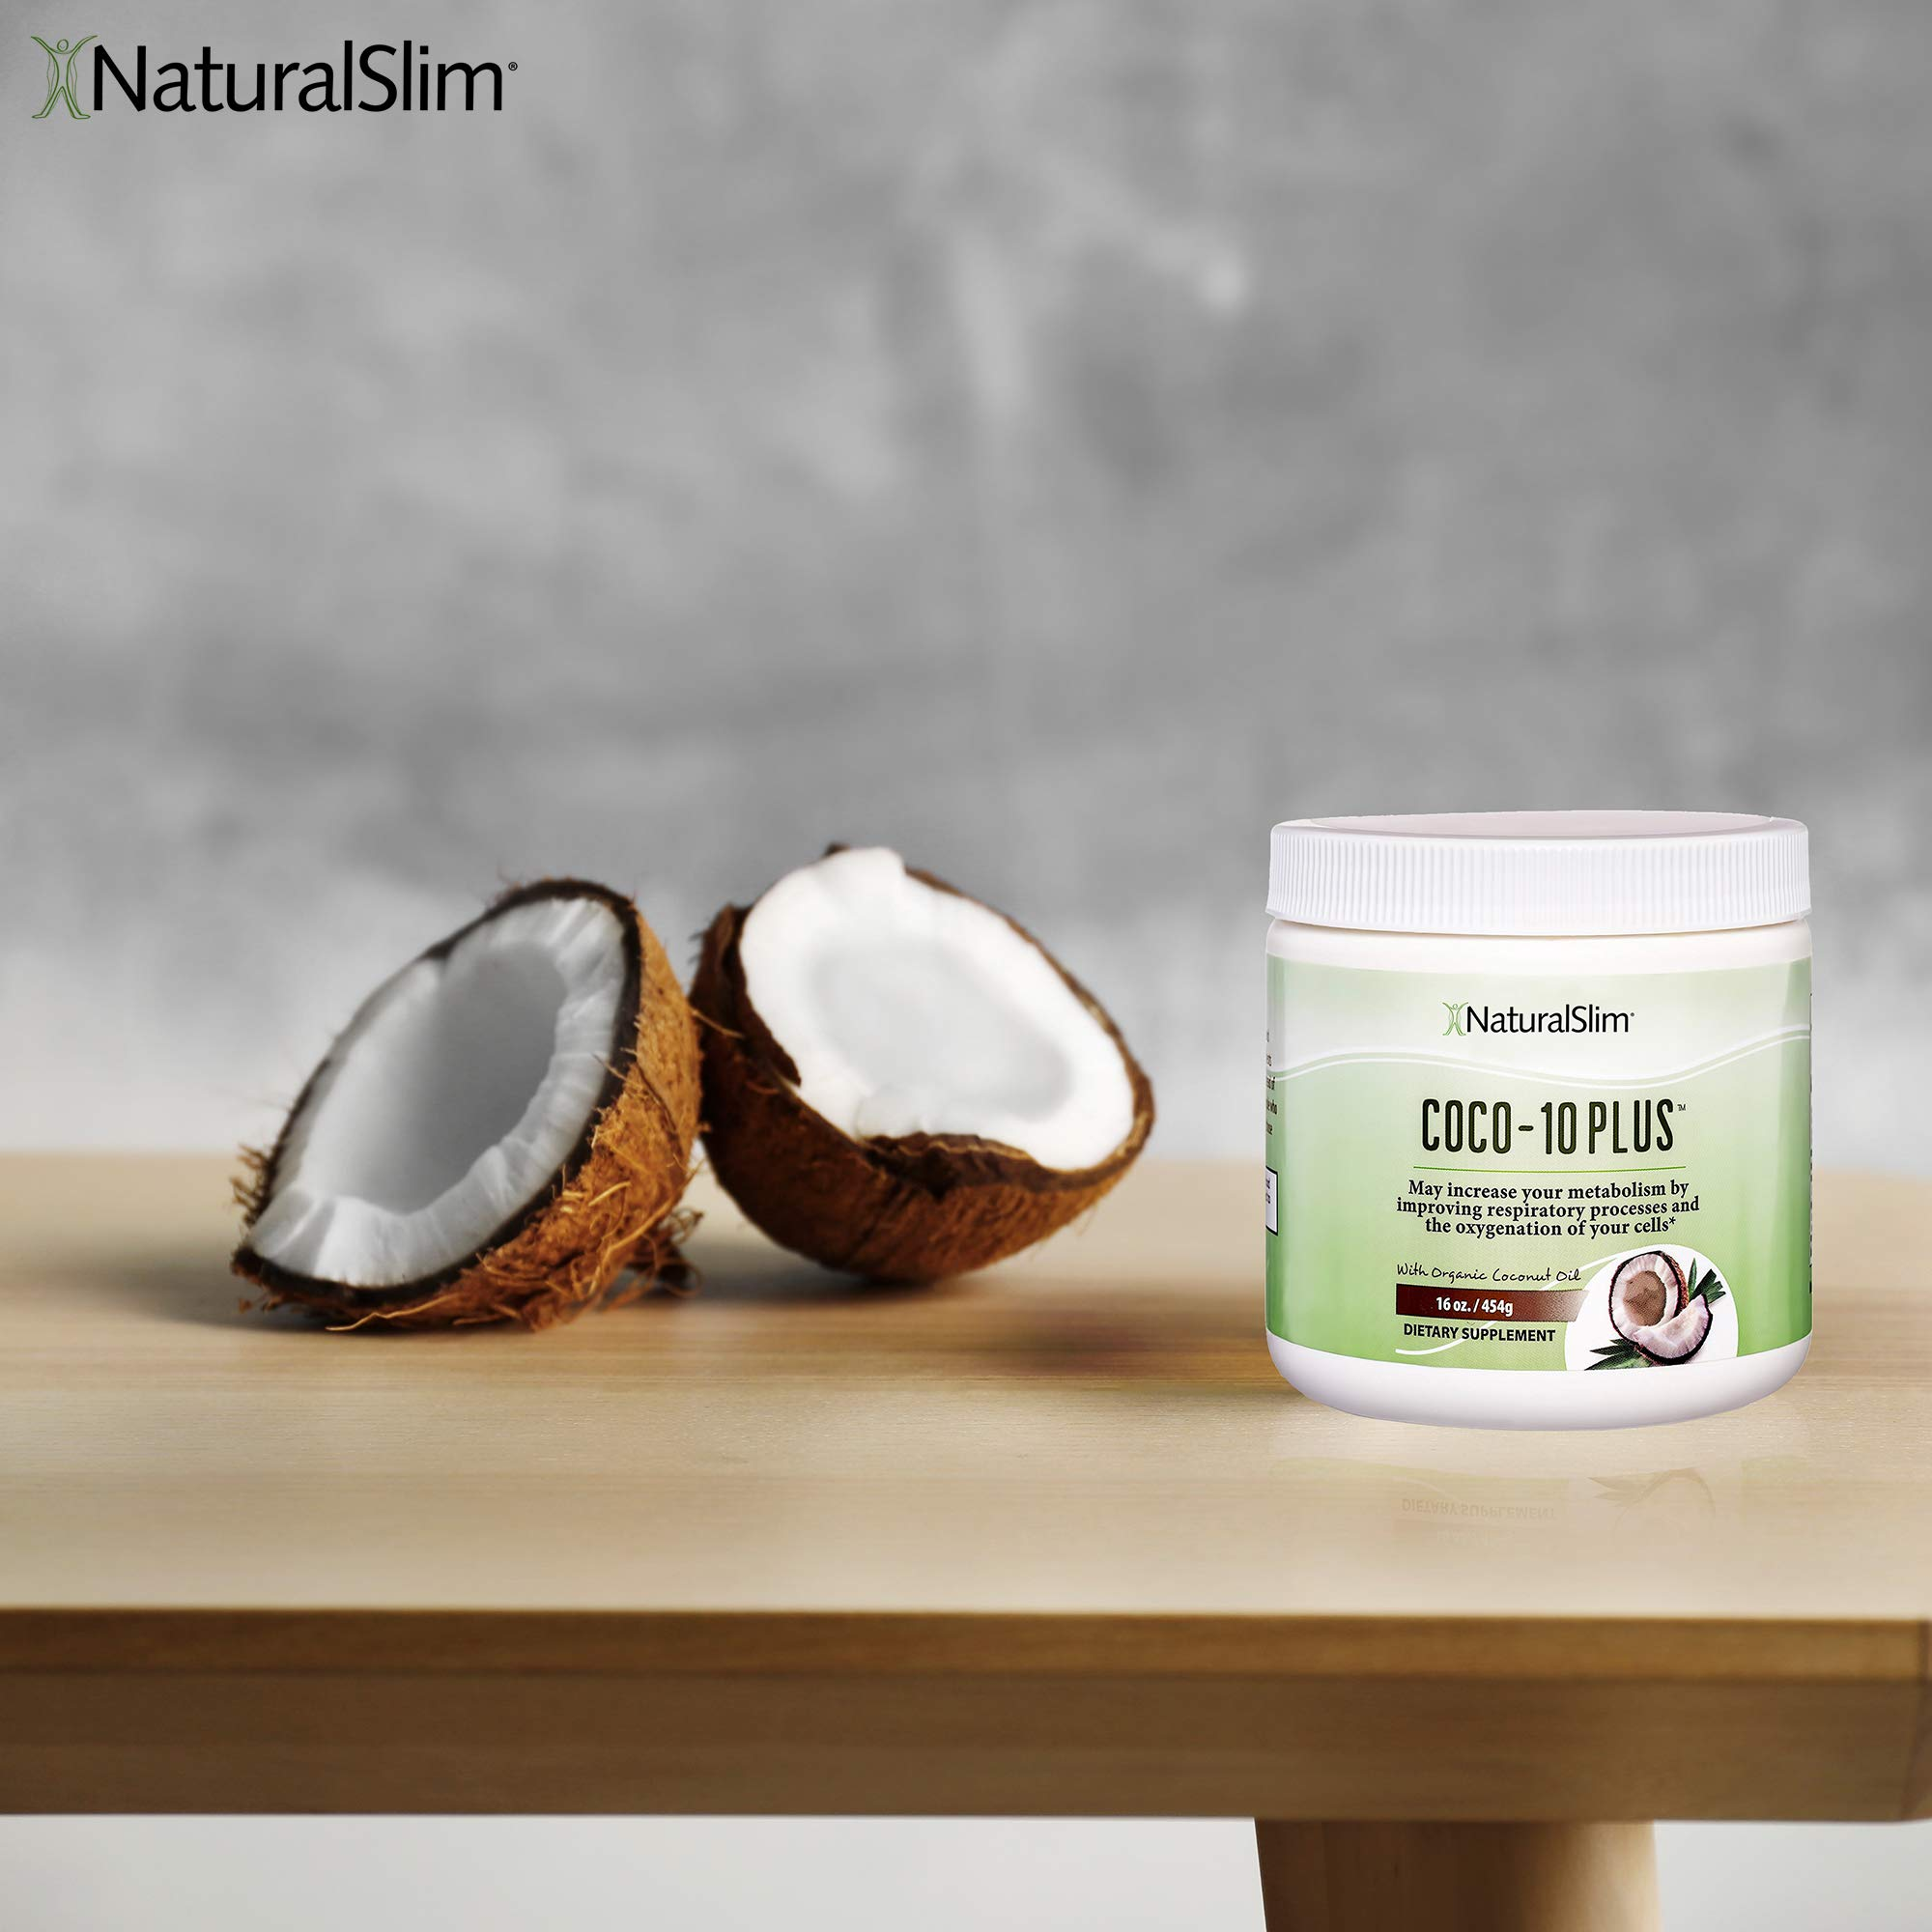 NaturalSlim''Super'' Organic Coconut Oil with CoQ10, Formulated by Obesity and Metabolism Specialist to Improve Energy Levels and Assist with Weight Loss - Natural Fat Burner to Any Diet Attempt 16 Oz by RelaxSlim  (Image #3)